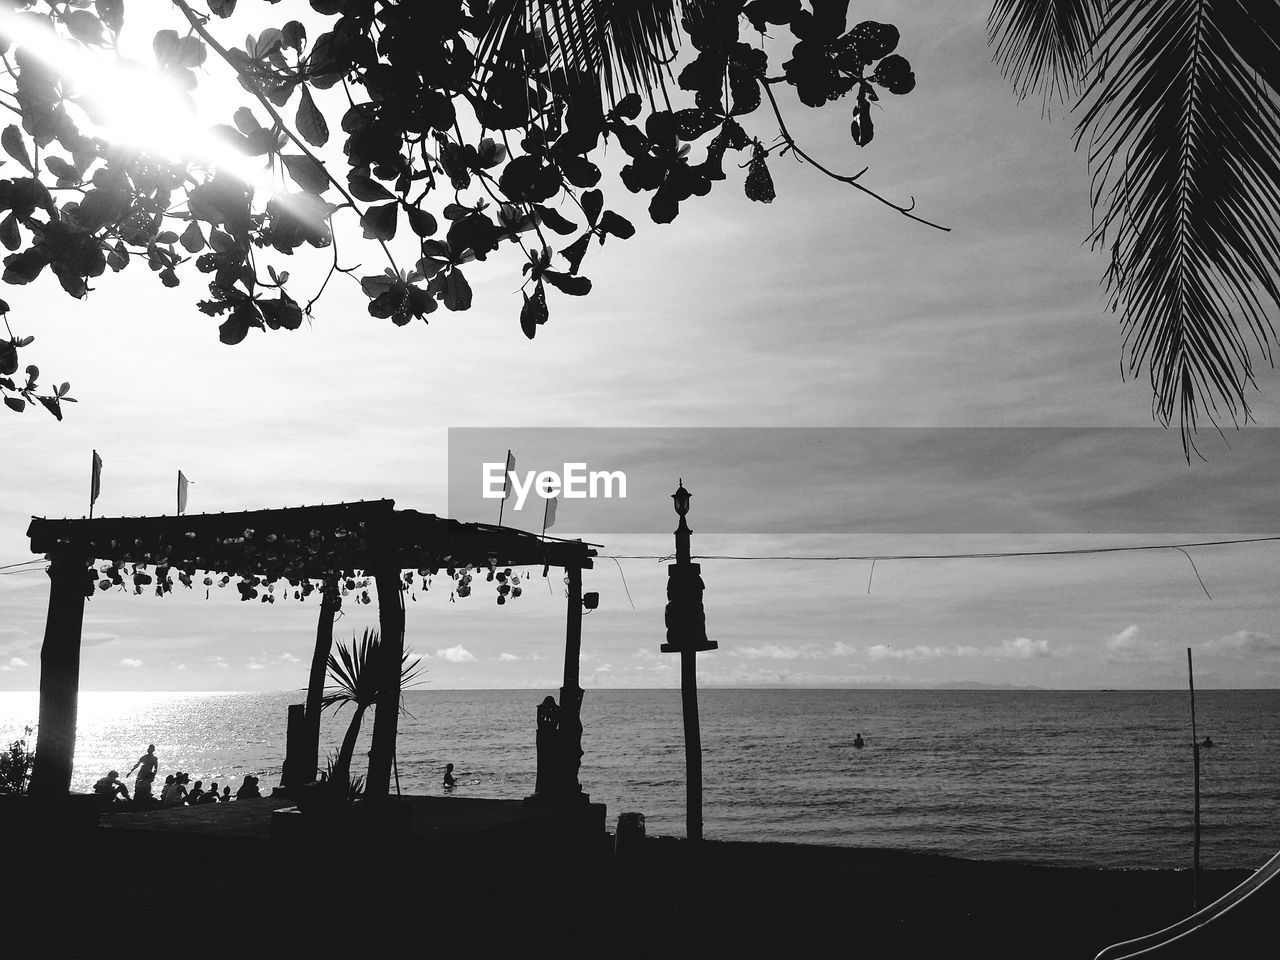 sea, water, horizon over water, sky, nature, beach, beauty in nature, scenics, silhouette, tree, outdoors, tranquility, day, palm tree, no people